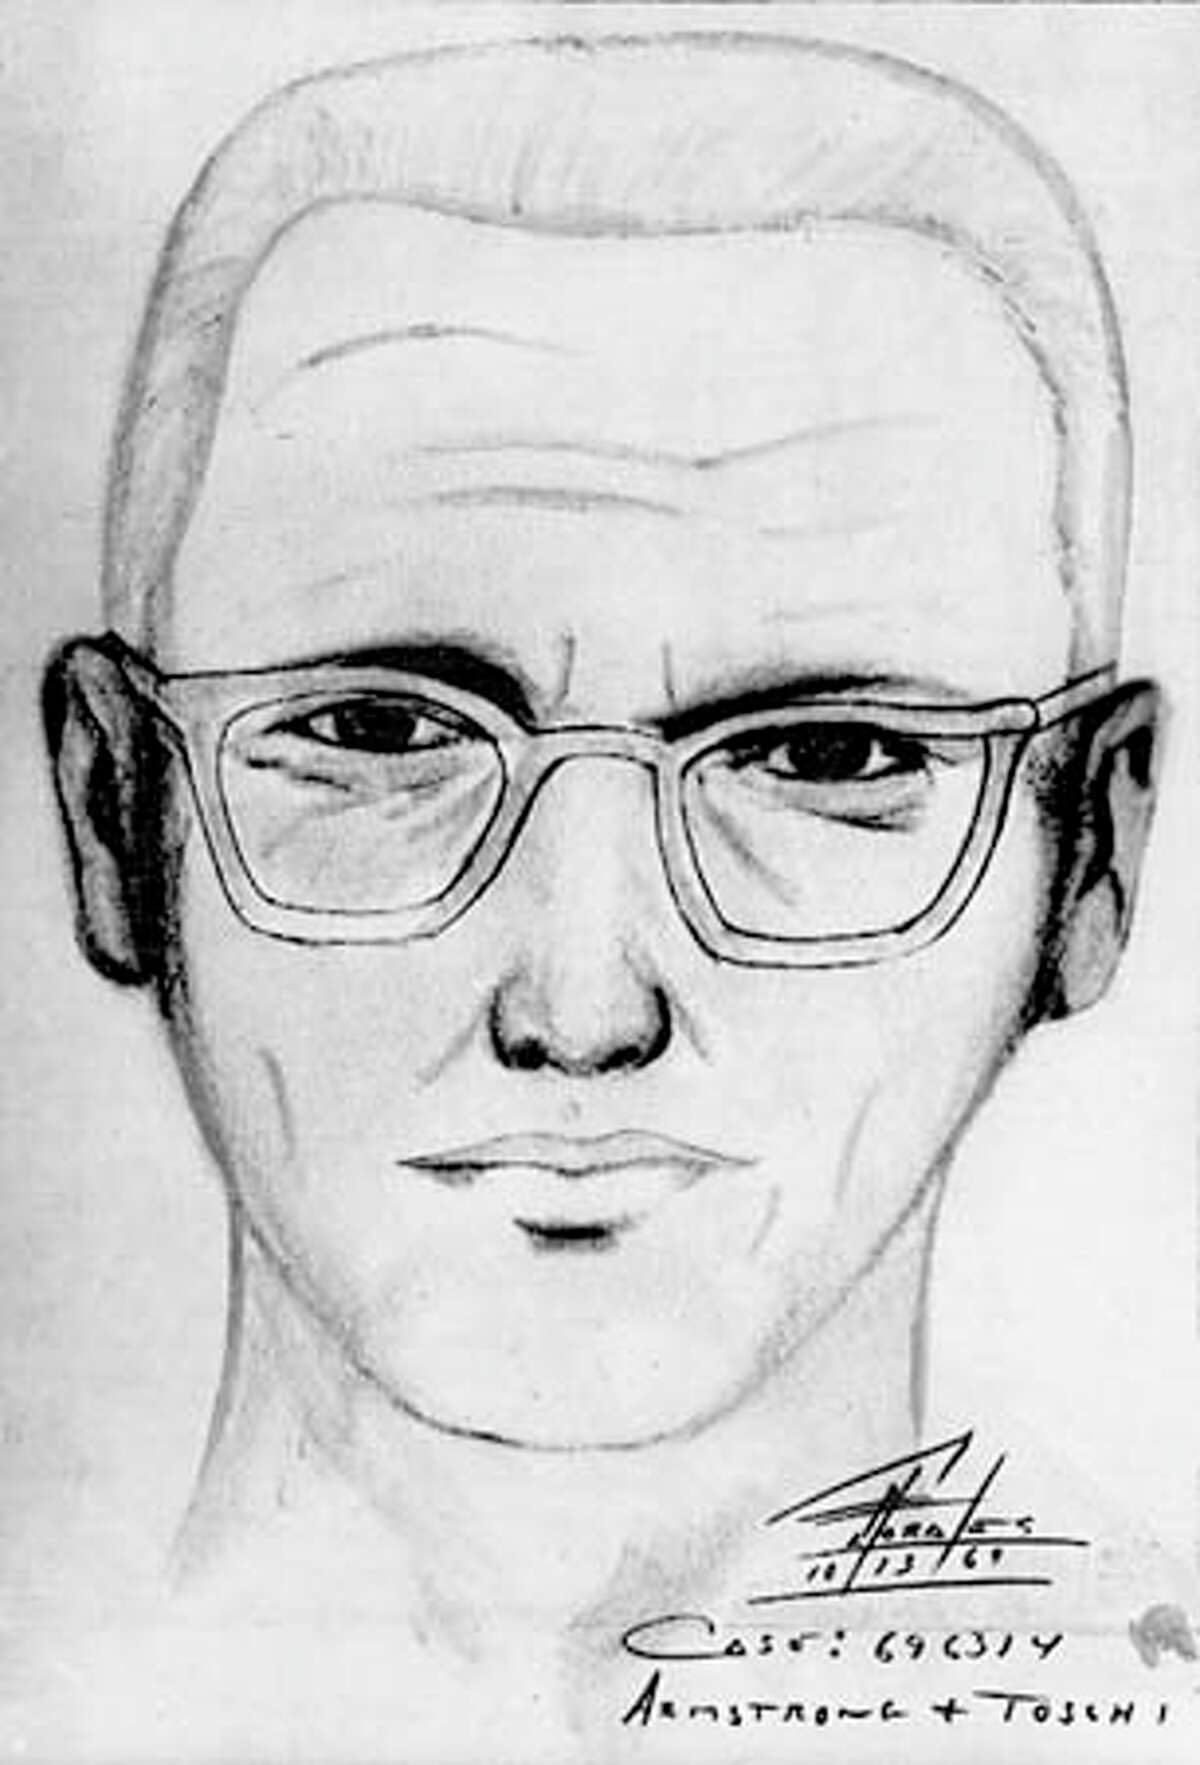 A police sketch of the man suspected of being the northern California